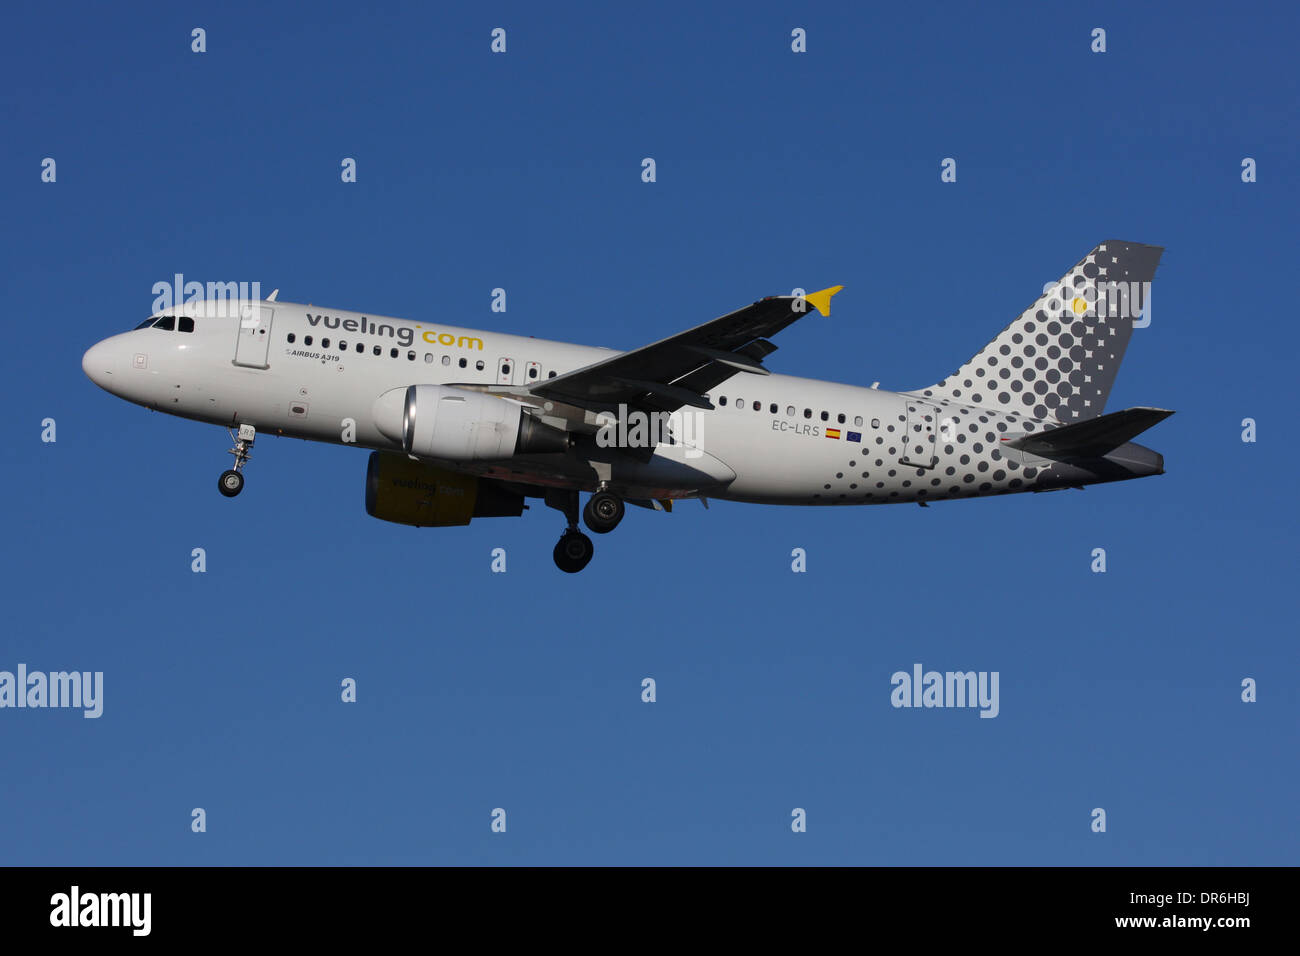 VUELING - Stock Image